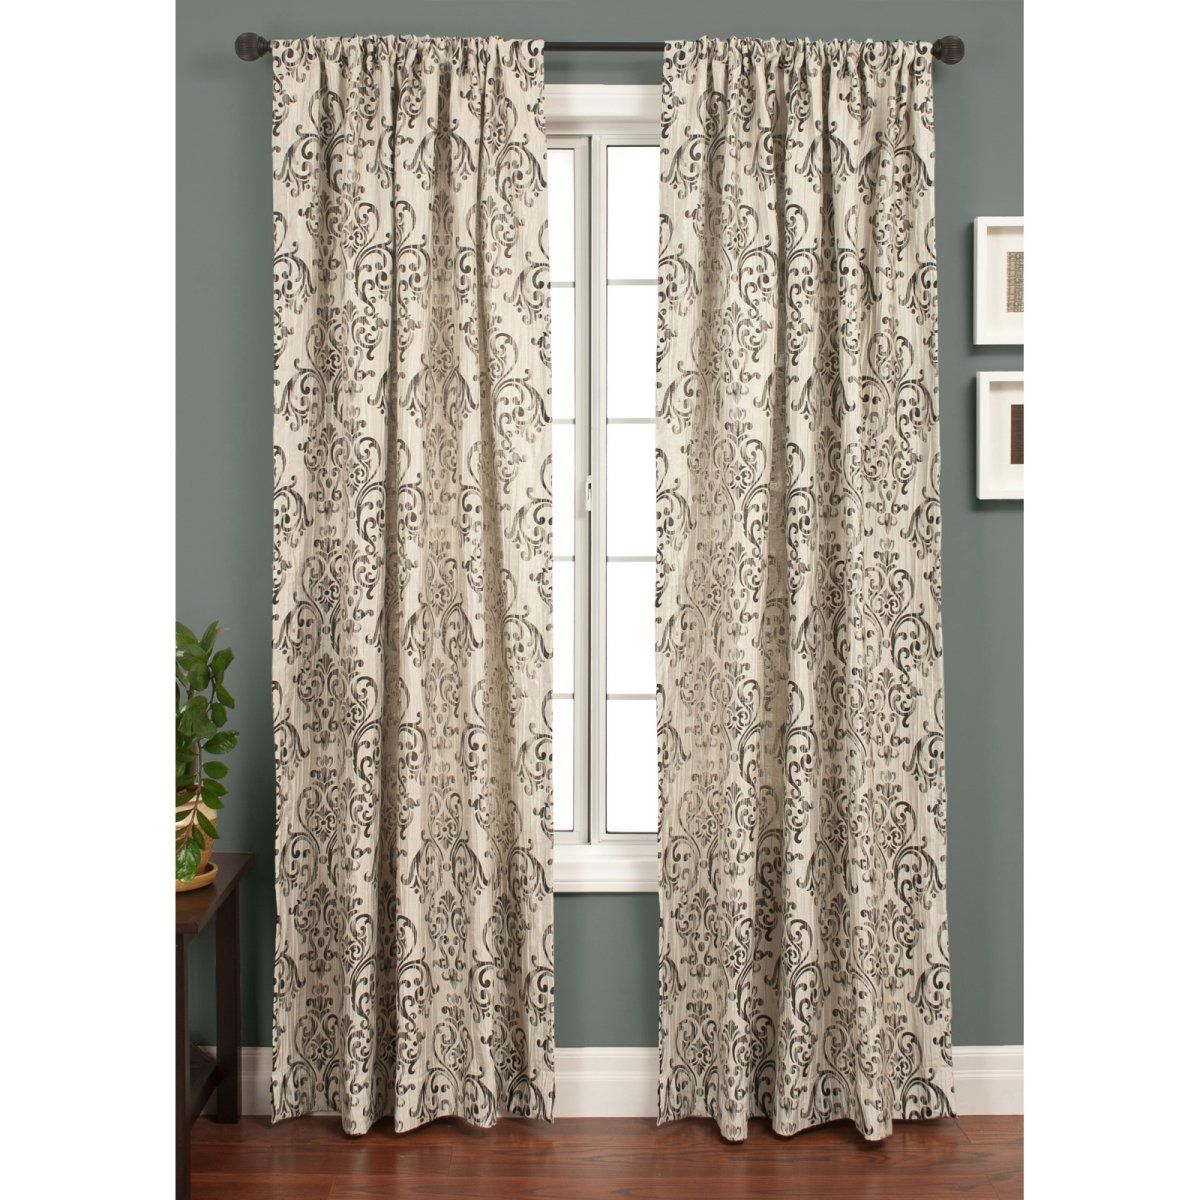 Hayneedle Federal Blue Curtains 108 Inch Curtains 96 Inch